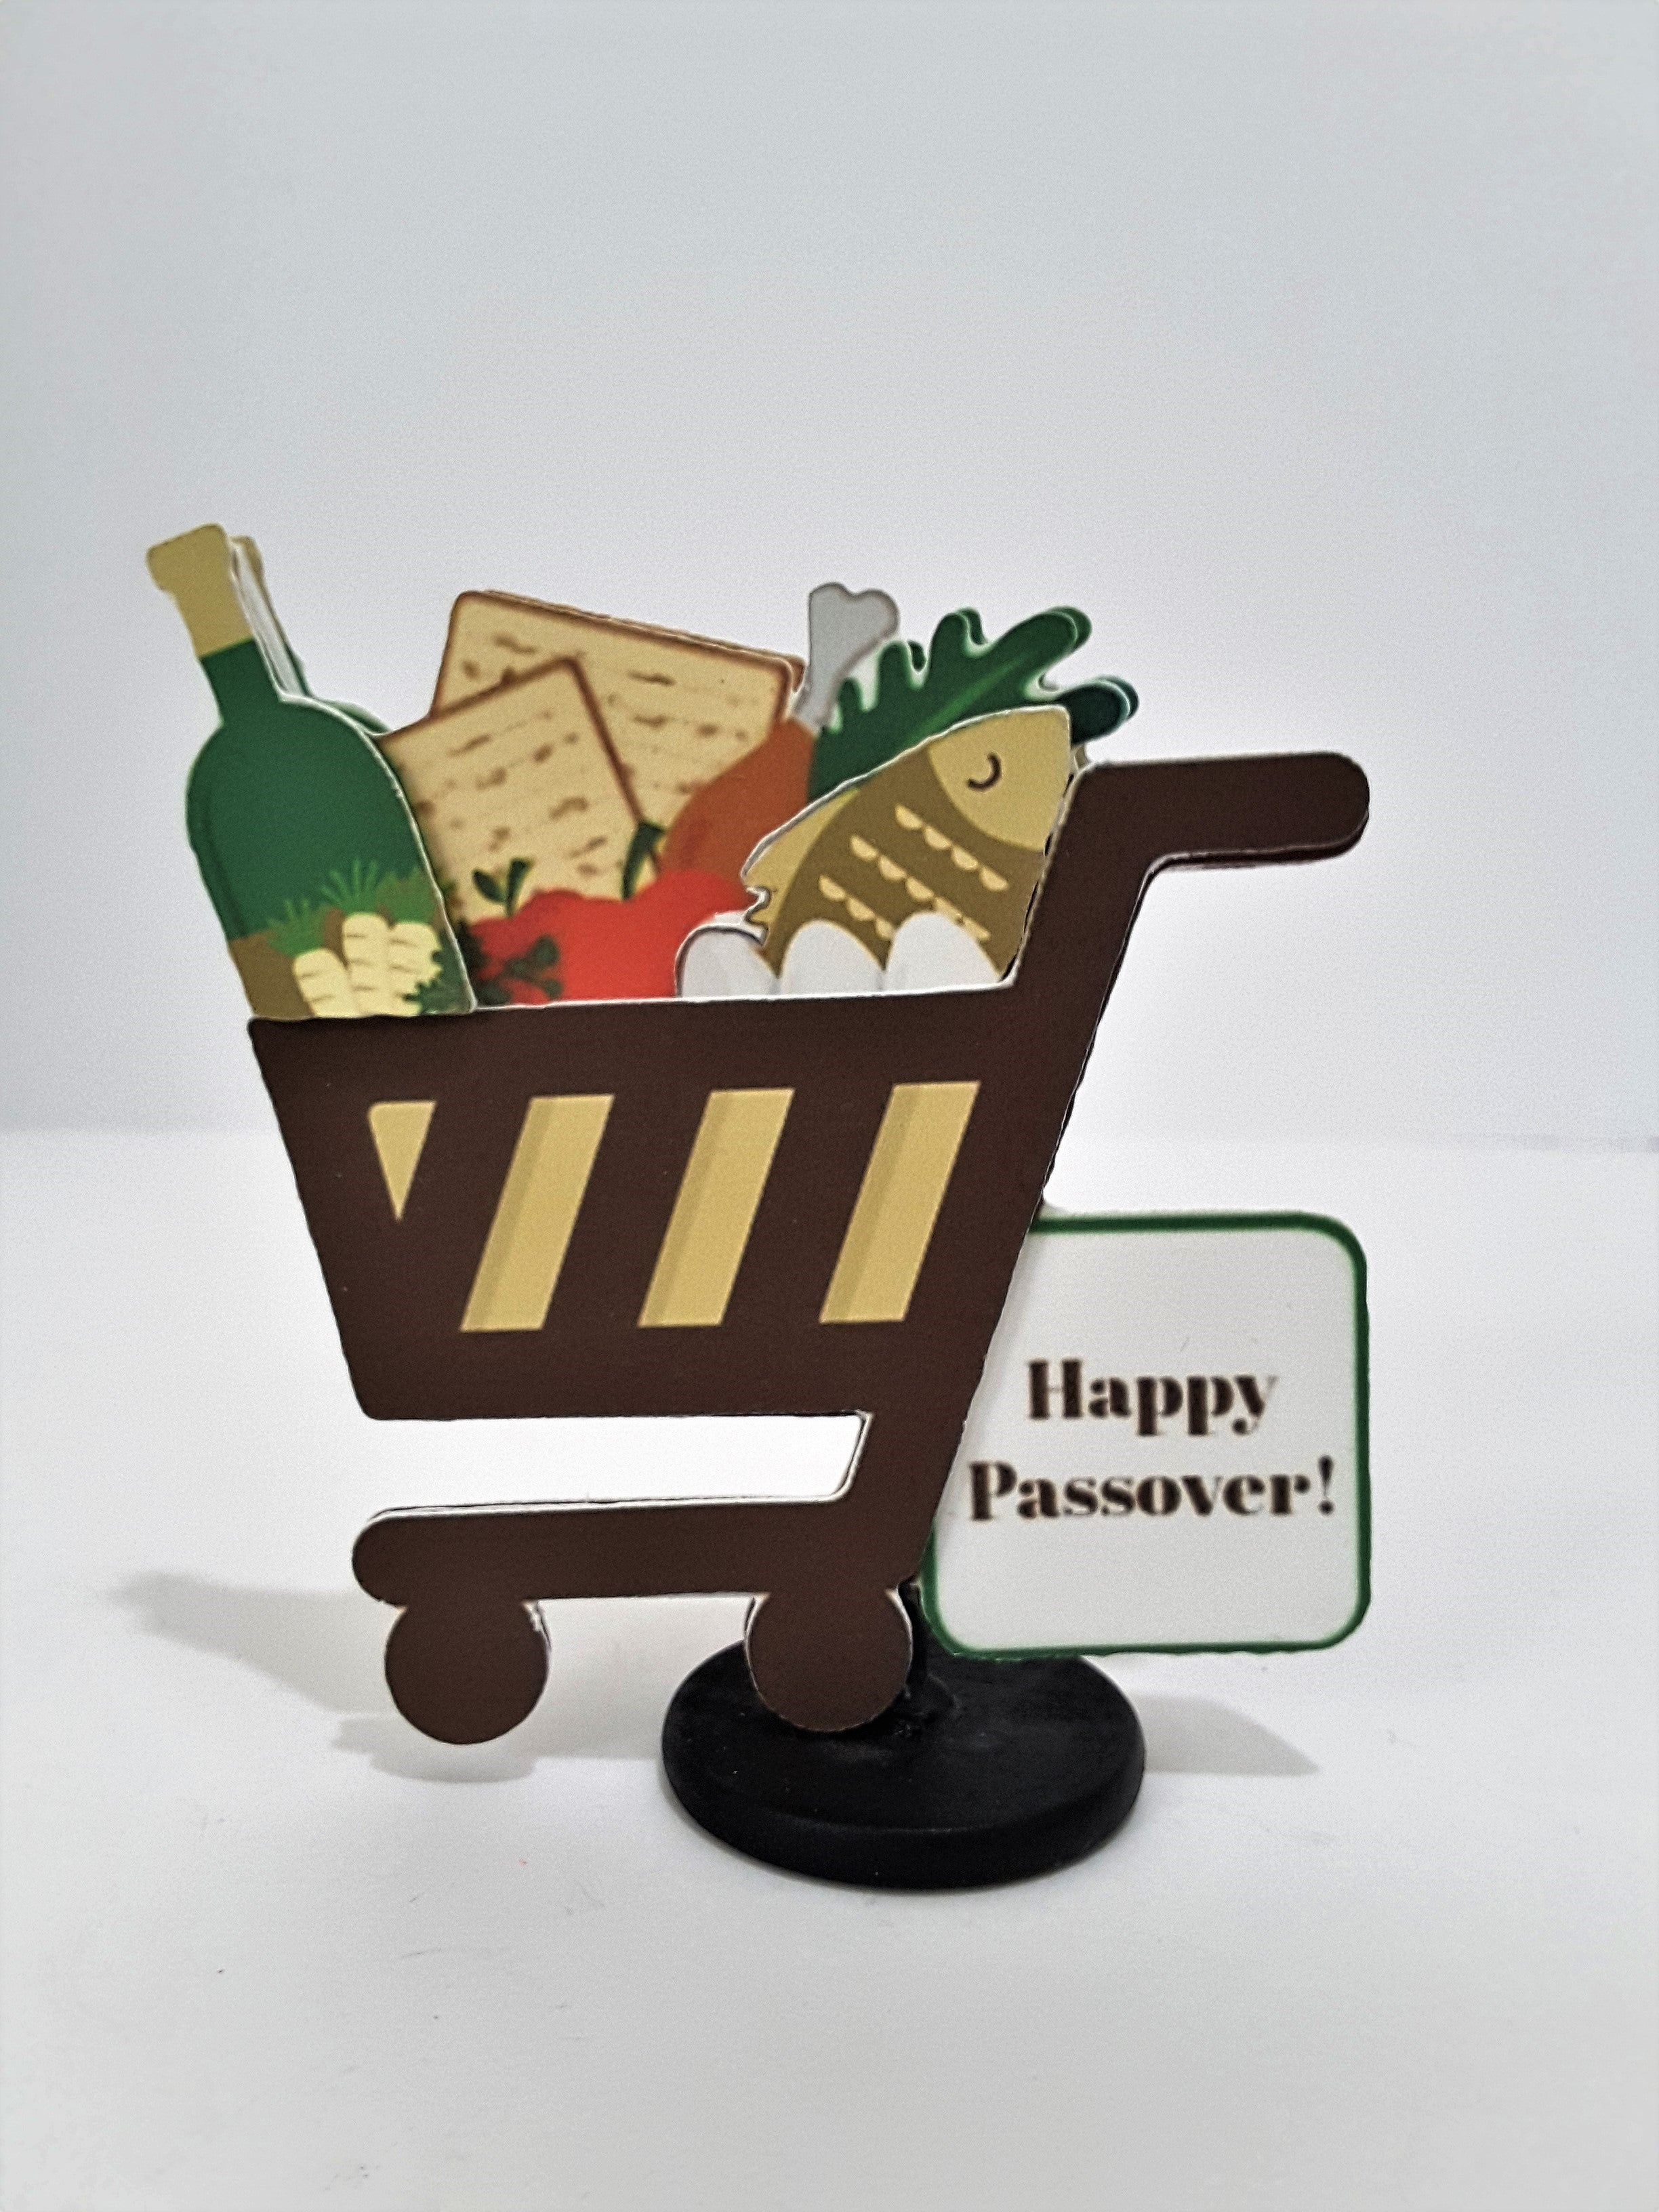 3D Passover Greeting Card Shop for Seder Dinner - TheLastWordBish.com